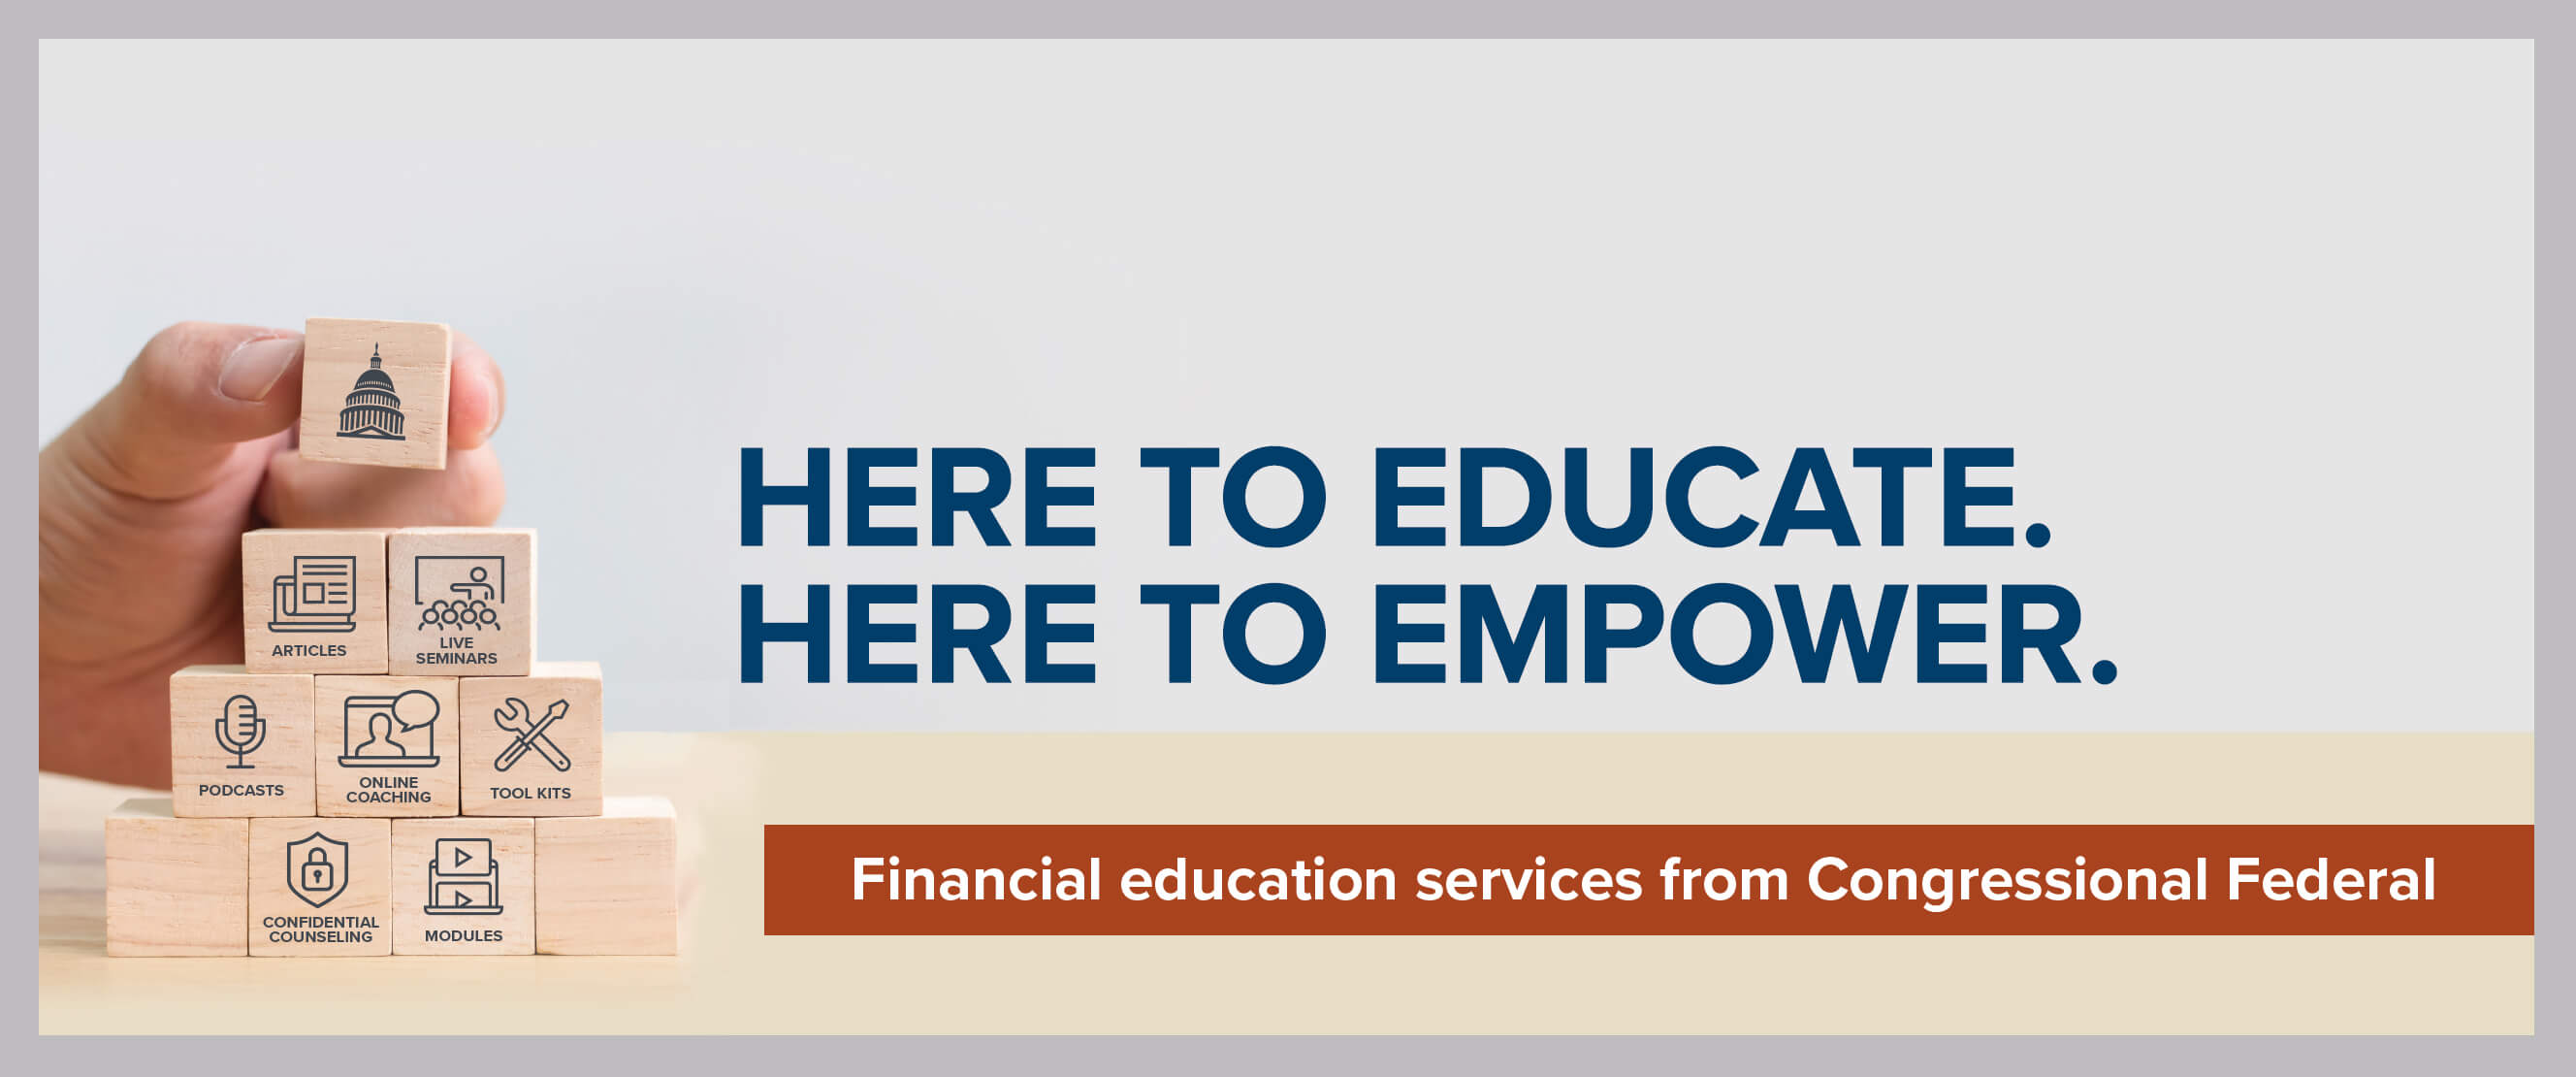 Here to educate. Here to empower. Financial education services from Congressional Federal.